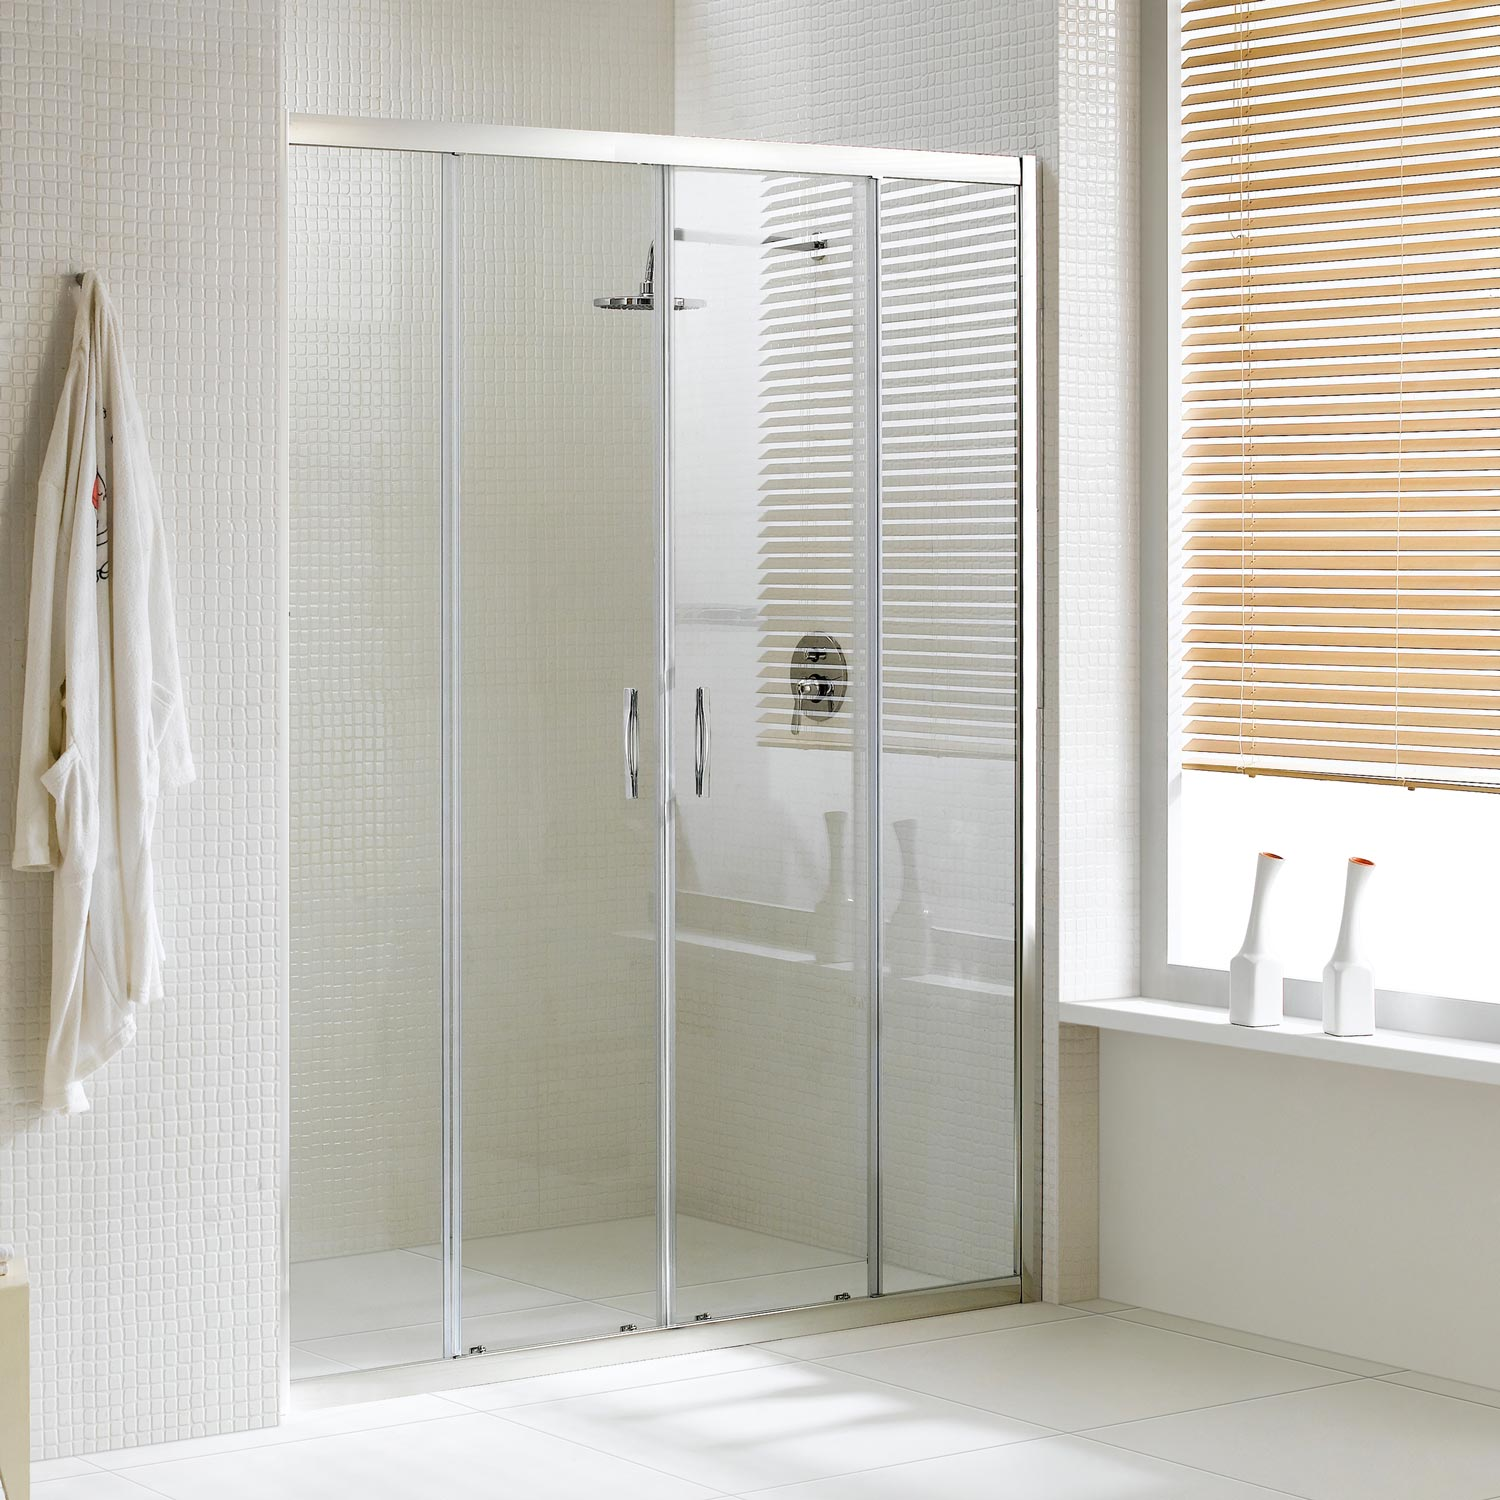 niche-shower-door-two-sliding-doors-pr018-1_1543847874_502